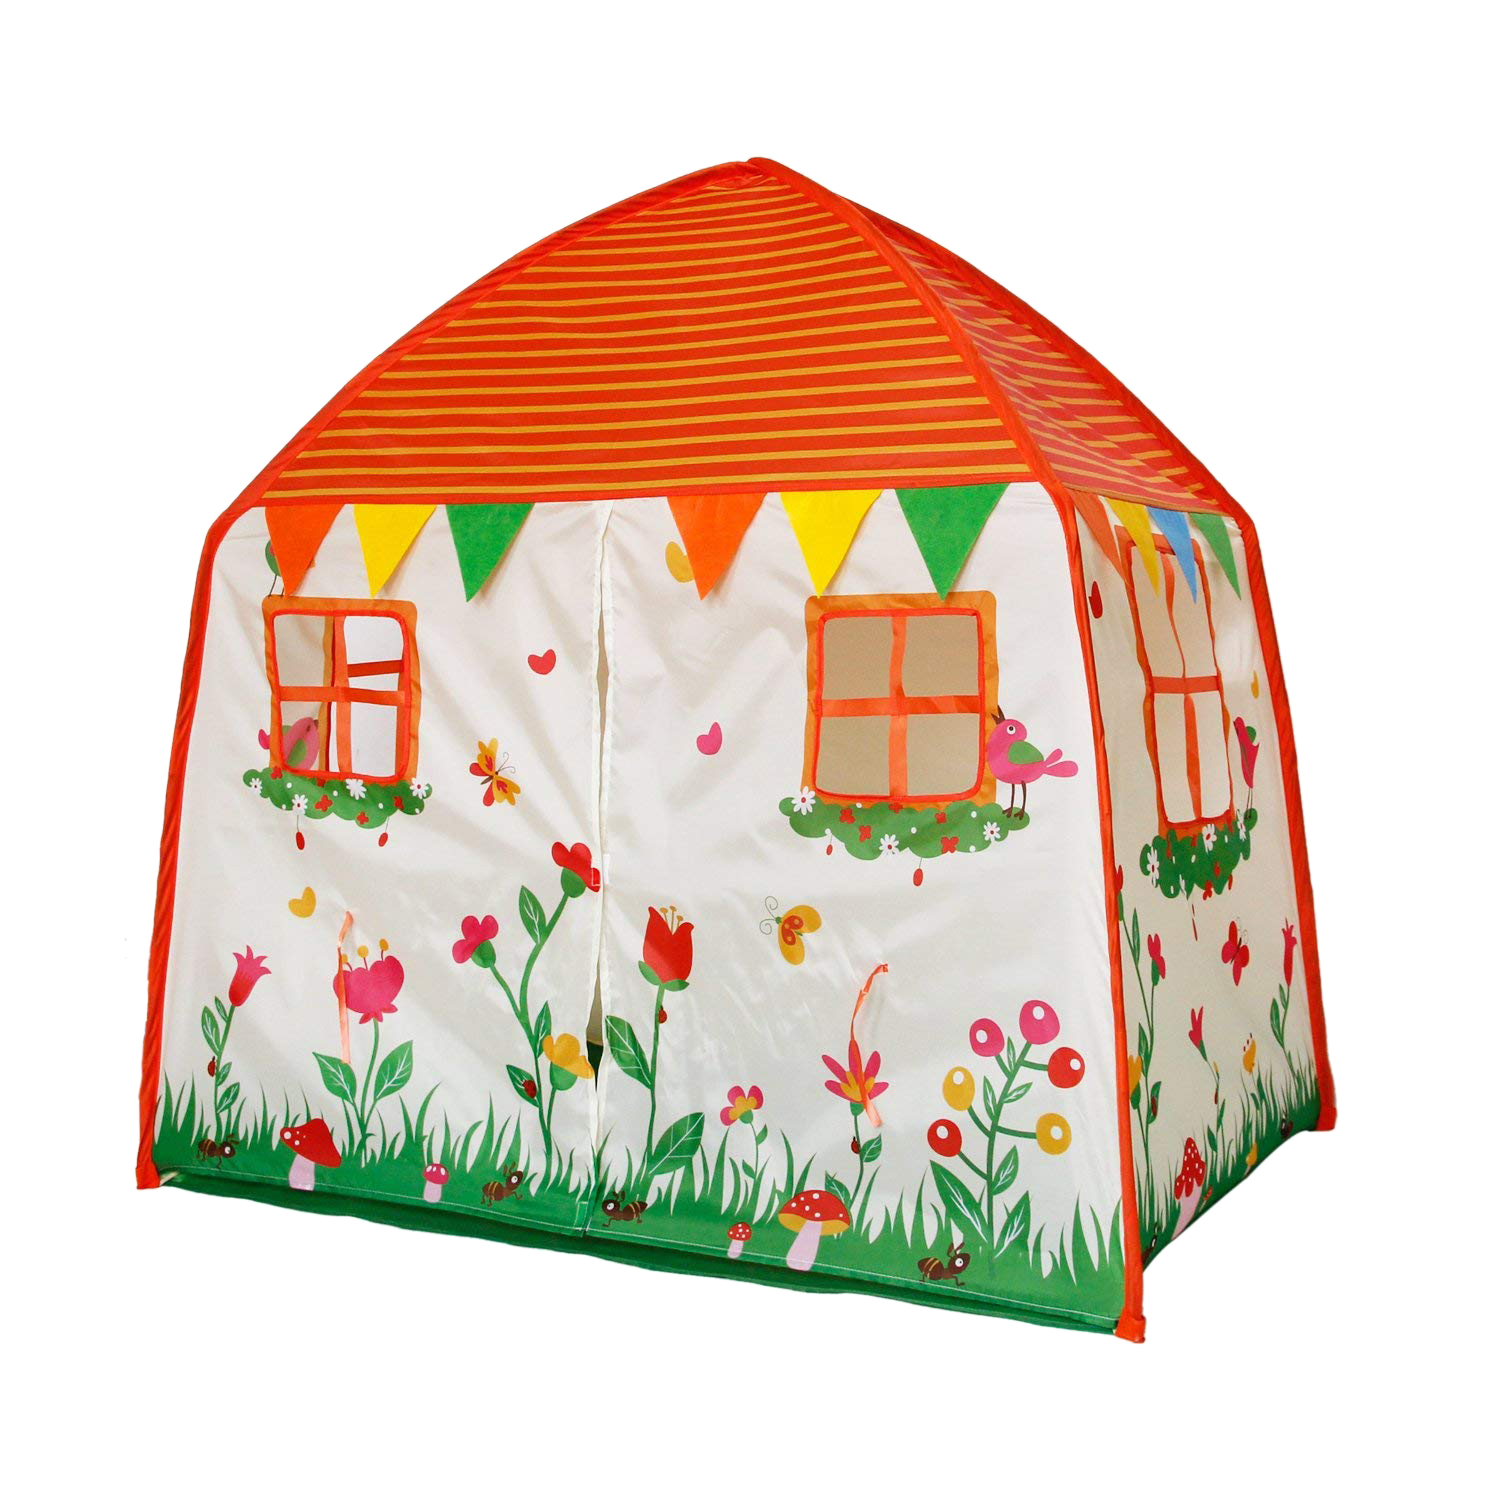 Childrens Tent for Outdoor and Indoor Play, Foldable Tent for Girls and Boys with Soft Carpet ApricotChildrens Tent for Outdoor and Indoor Play, Foldable Tent for Girls and Boys with Soft Carpet Apricot